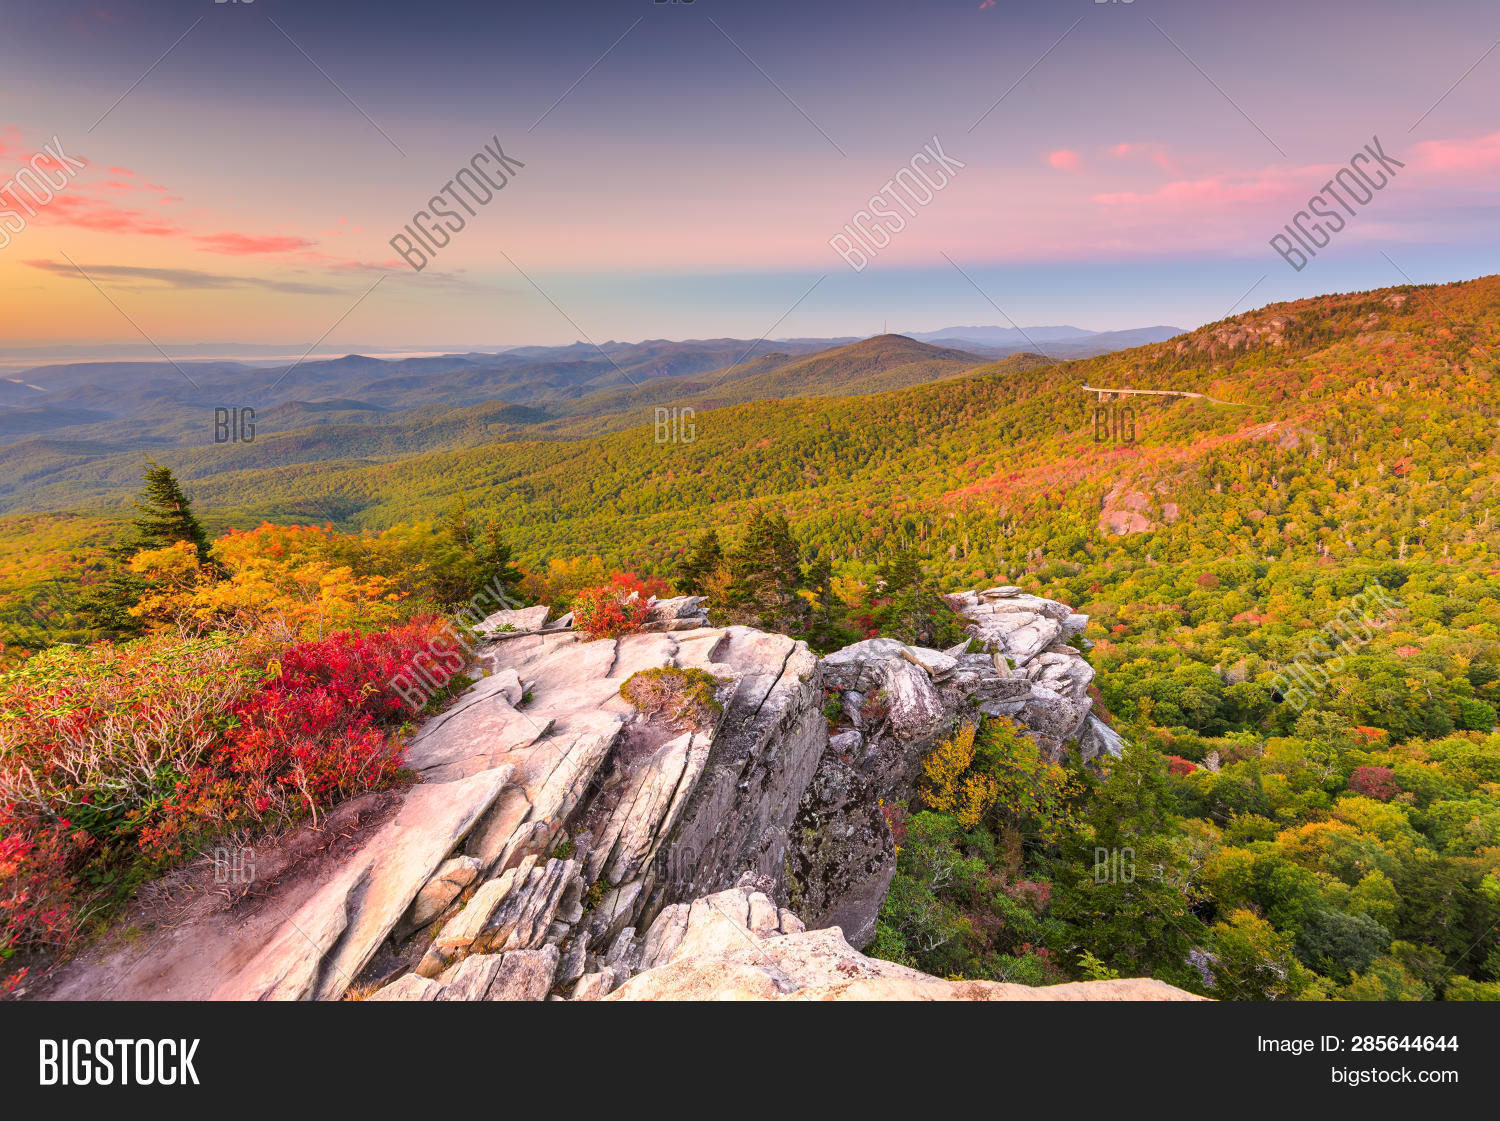 america,american,appalachia,appalachian,autumn,beautiful,blue,blue ridge,blue ridge mountains,blueridge,boone,boulders,dawn,dusk,escarpment,fall,foliage,forest,gorge,grandfather mountain,hill,landmark,landscape,lin cove,linn,linville,mountains,national,nature,nc,north carolina,outdoors,park,parkway,piedmont,ridge,rocks,scene,scenery,scenic,season,south,southern,tanawha,trail,trees,usa,valley,viaduct,woods